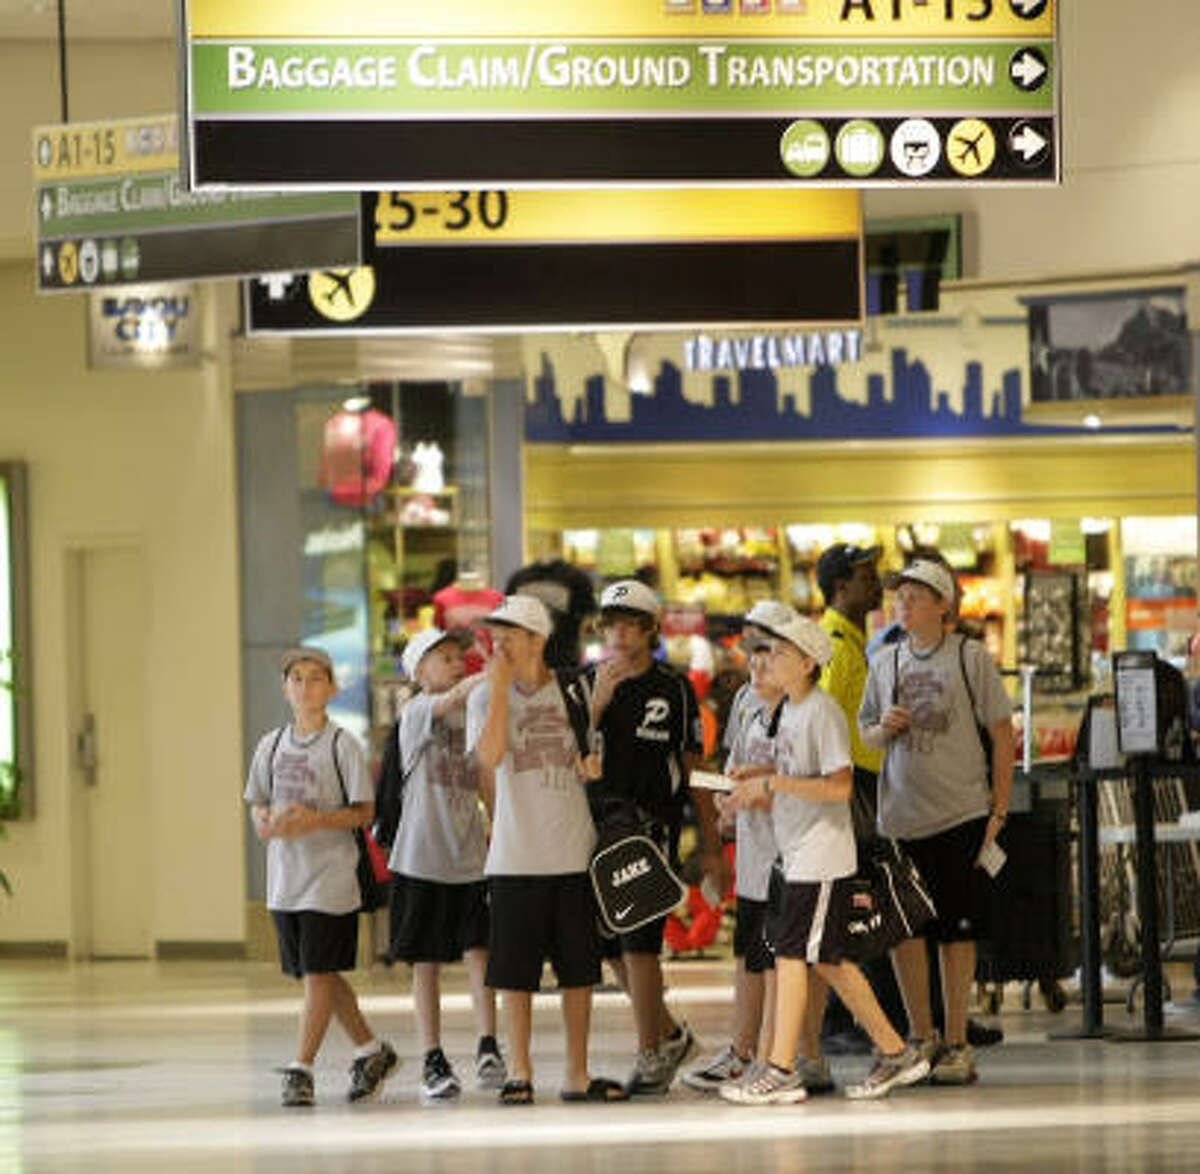 Pearland Little Leaguers walk through the terminal.